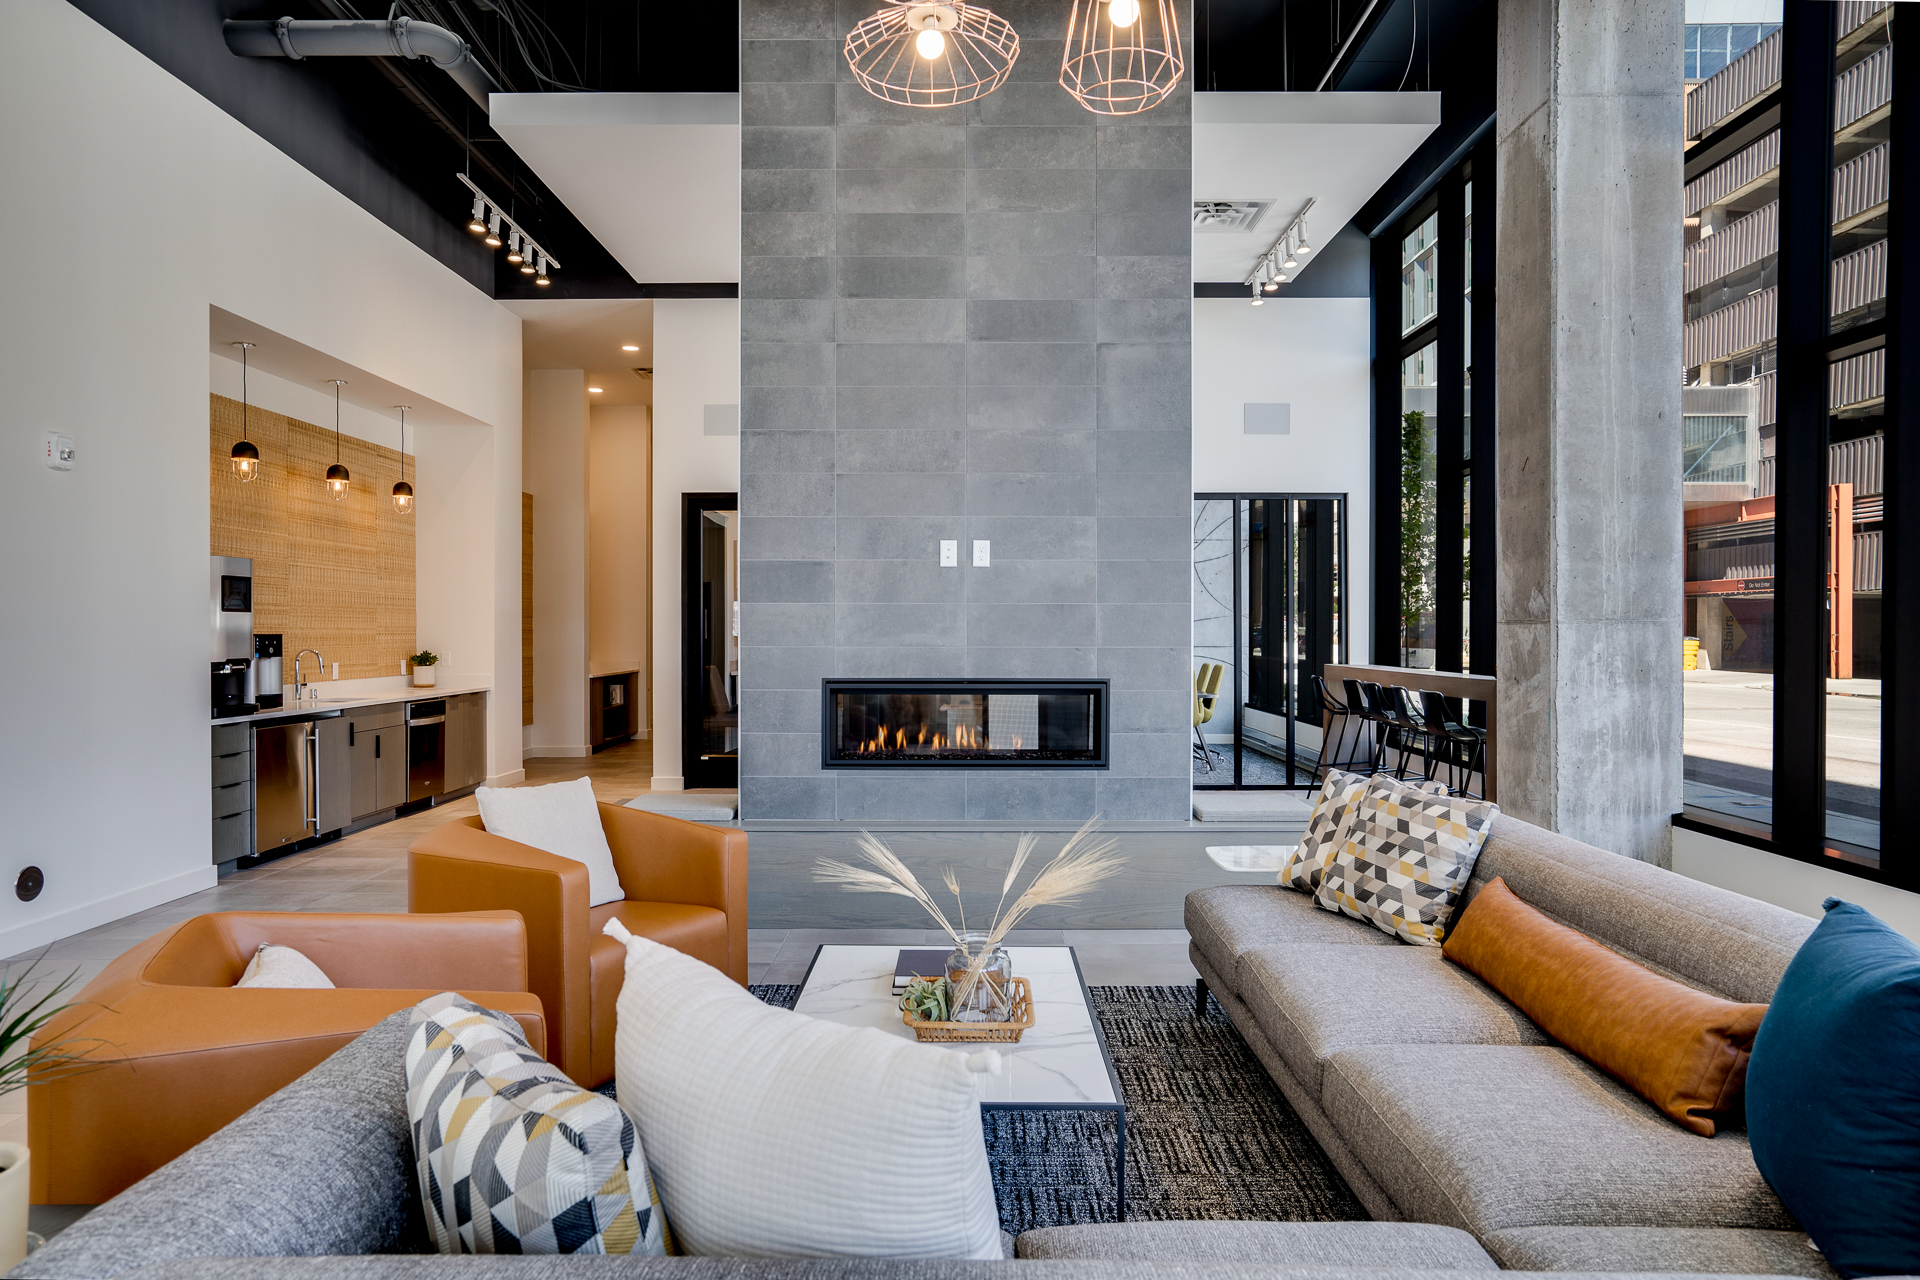 sora lobby with fireplace and couches